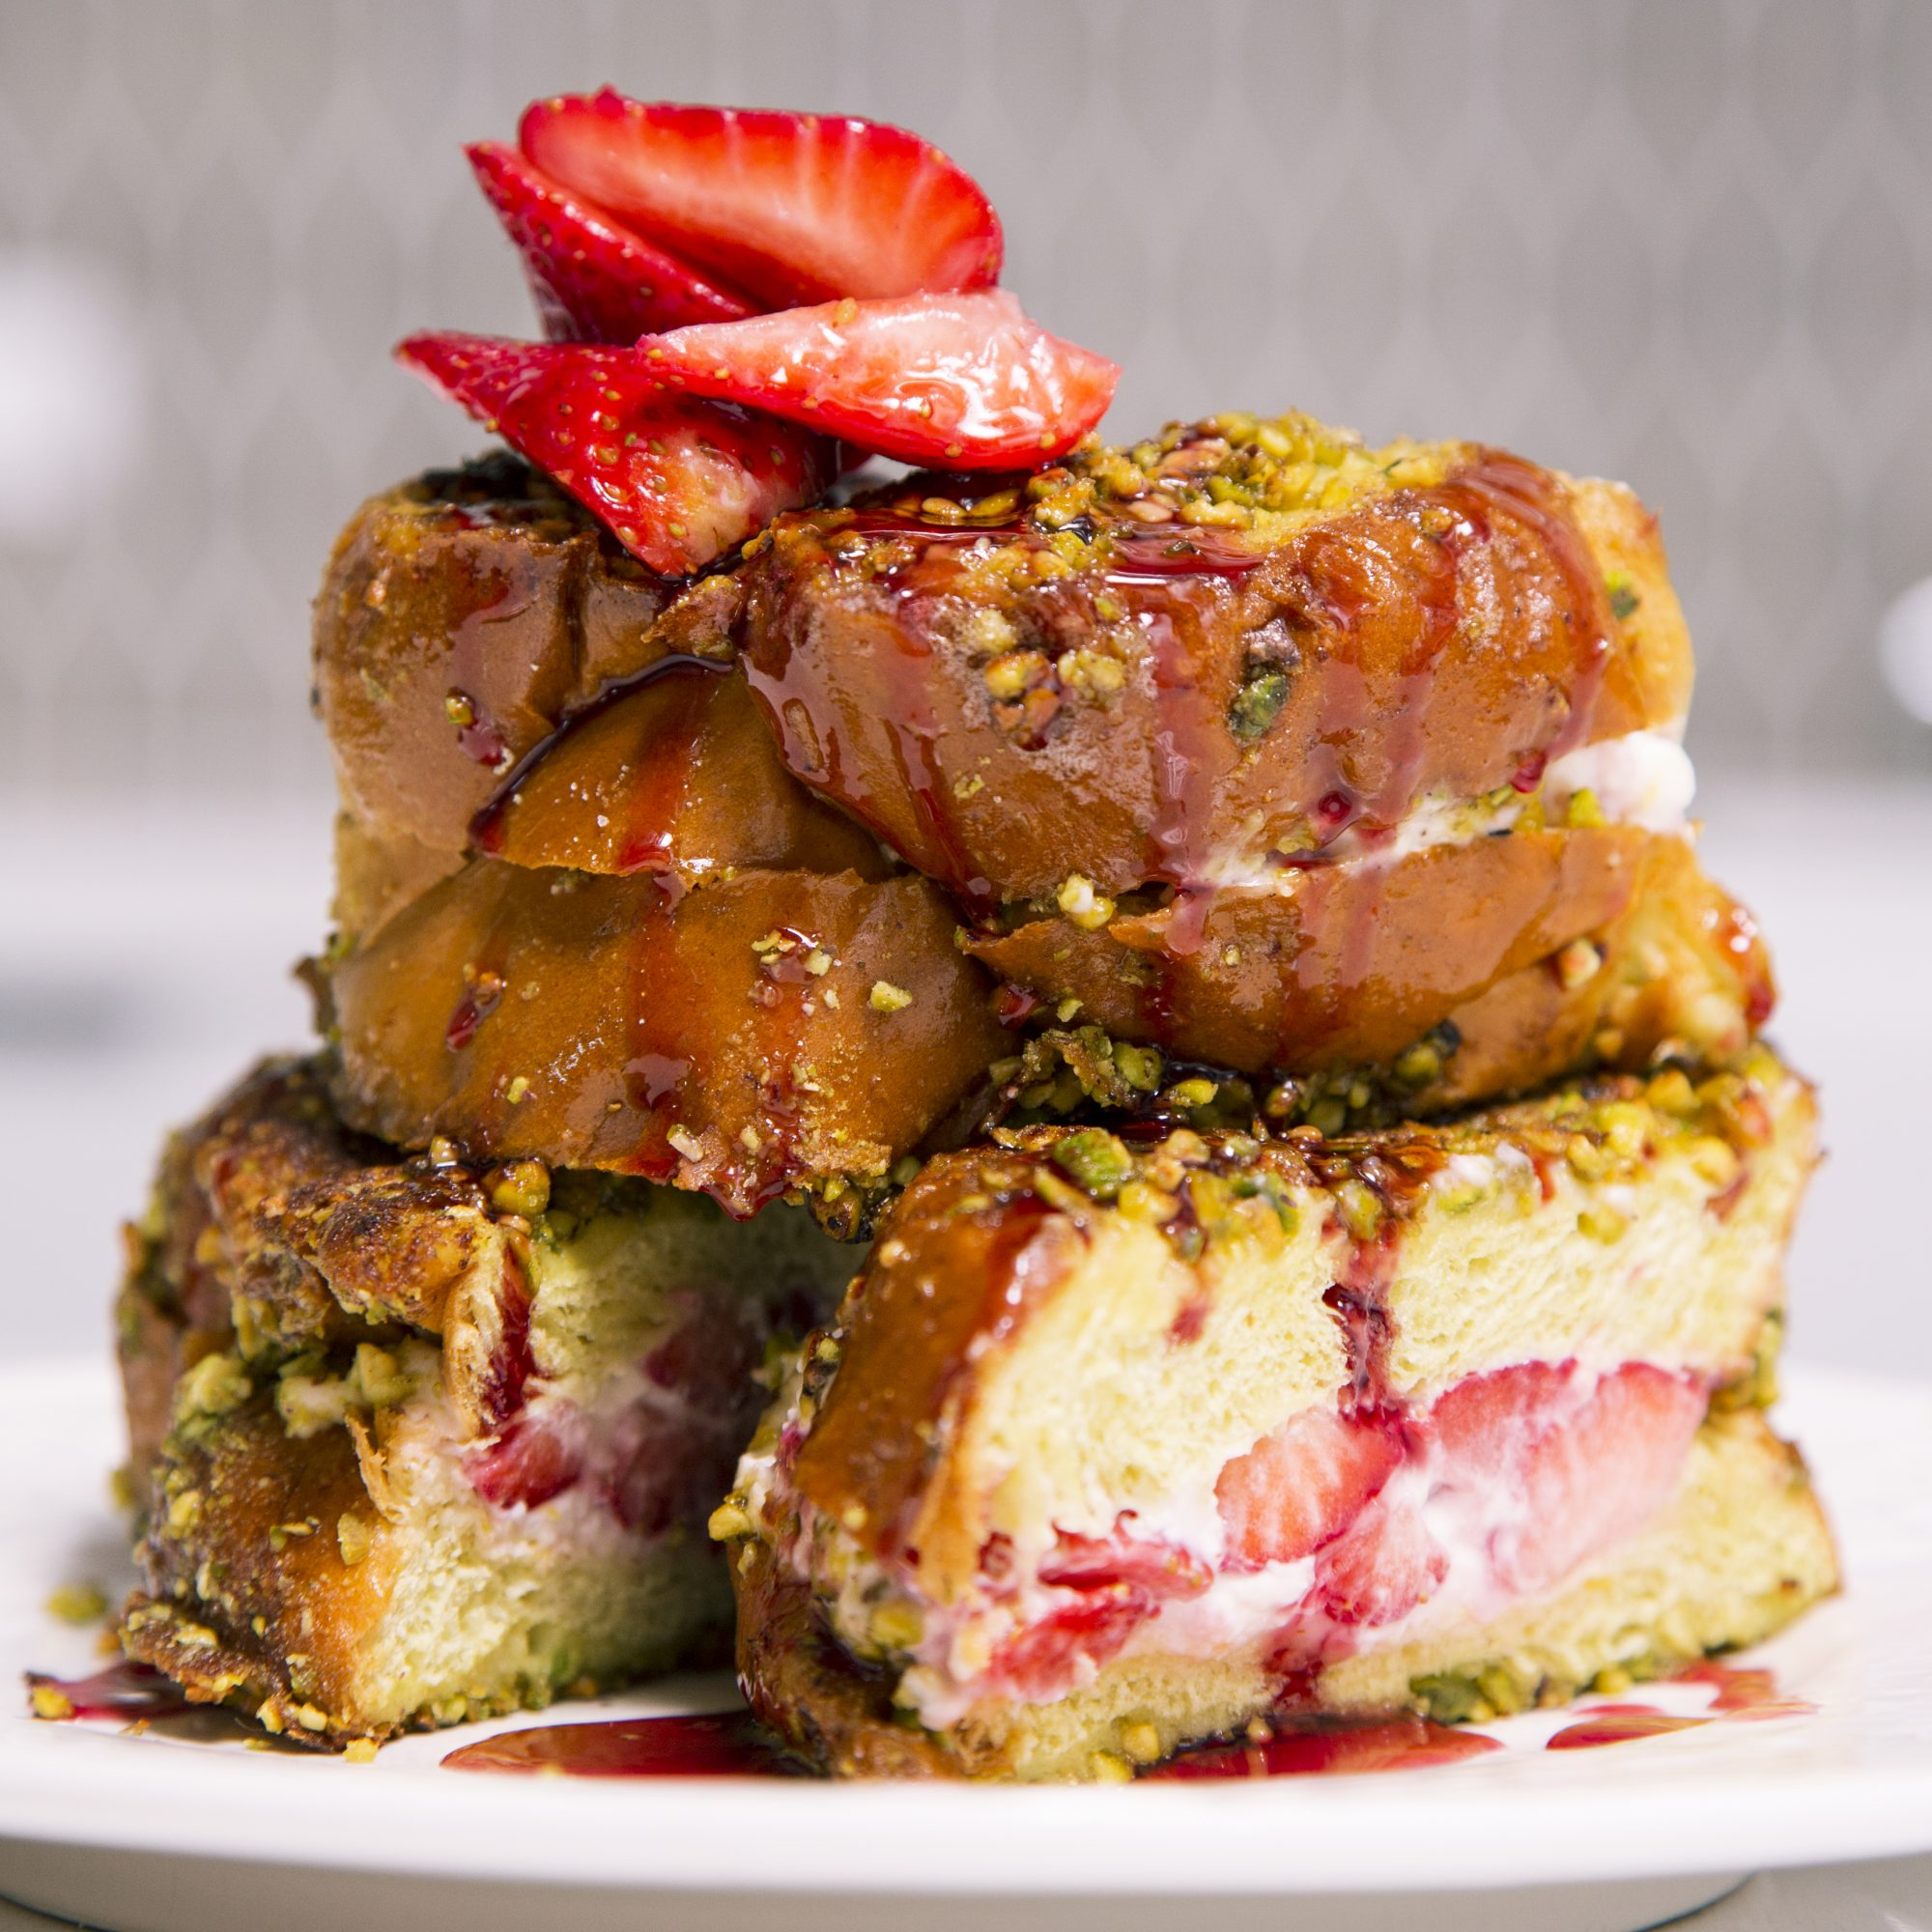 Pistachio-Crusted French Toast with Strawberry and Neufchatel Filling